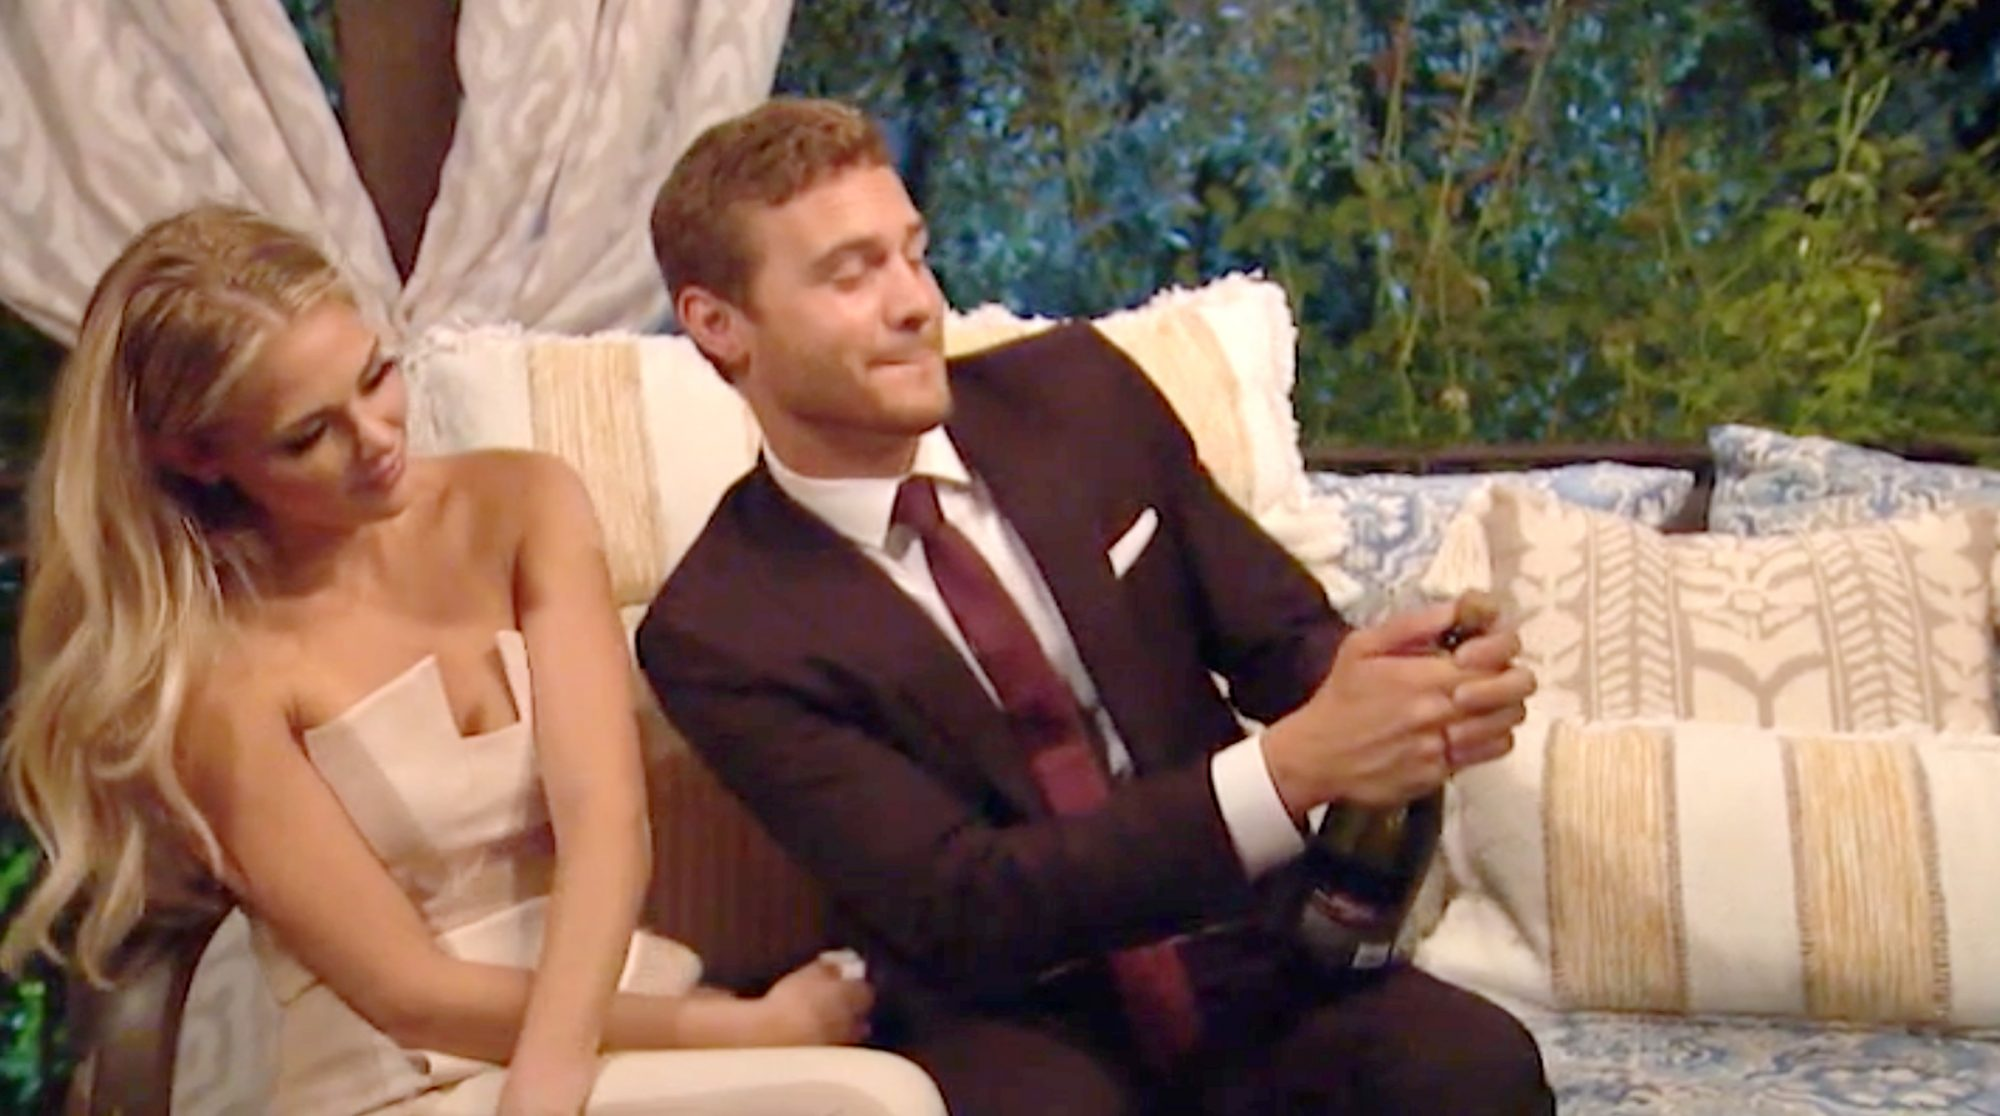 the Bachelor screen grab